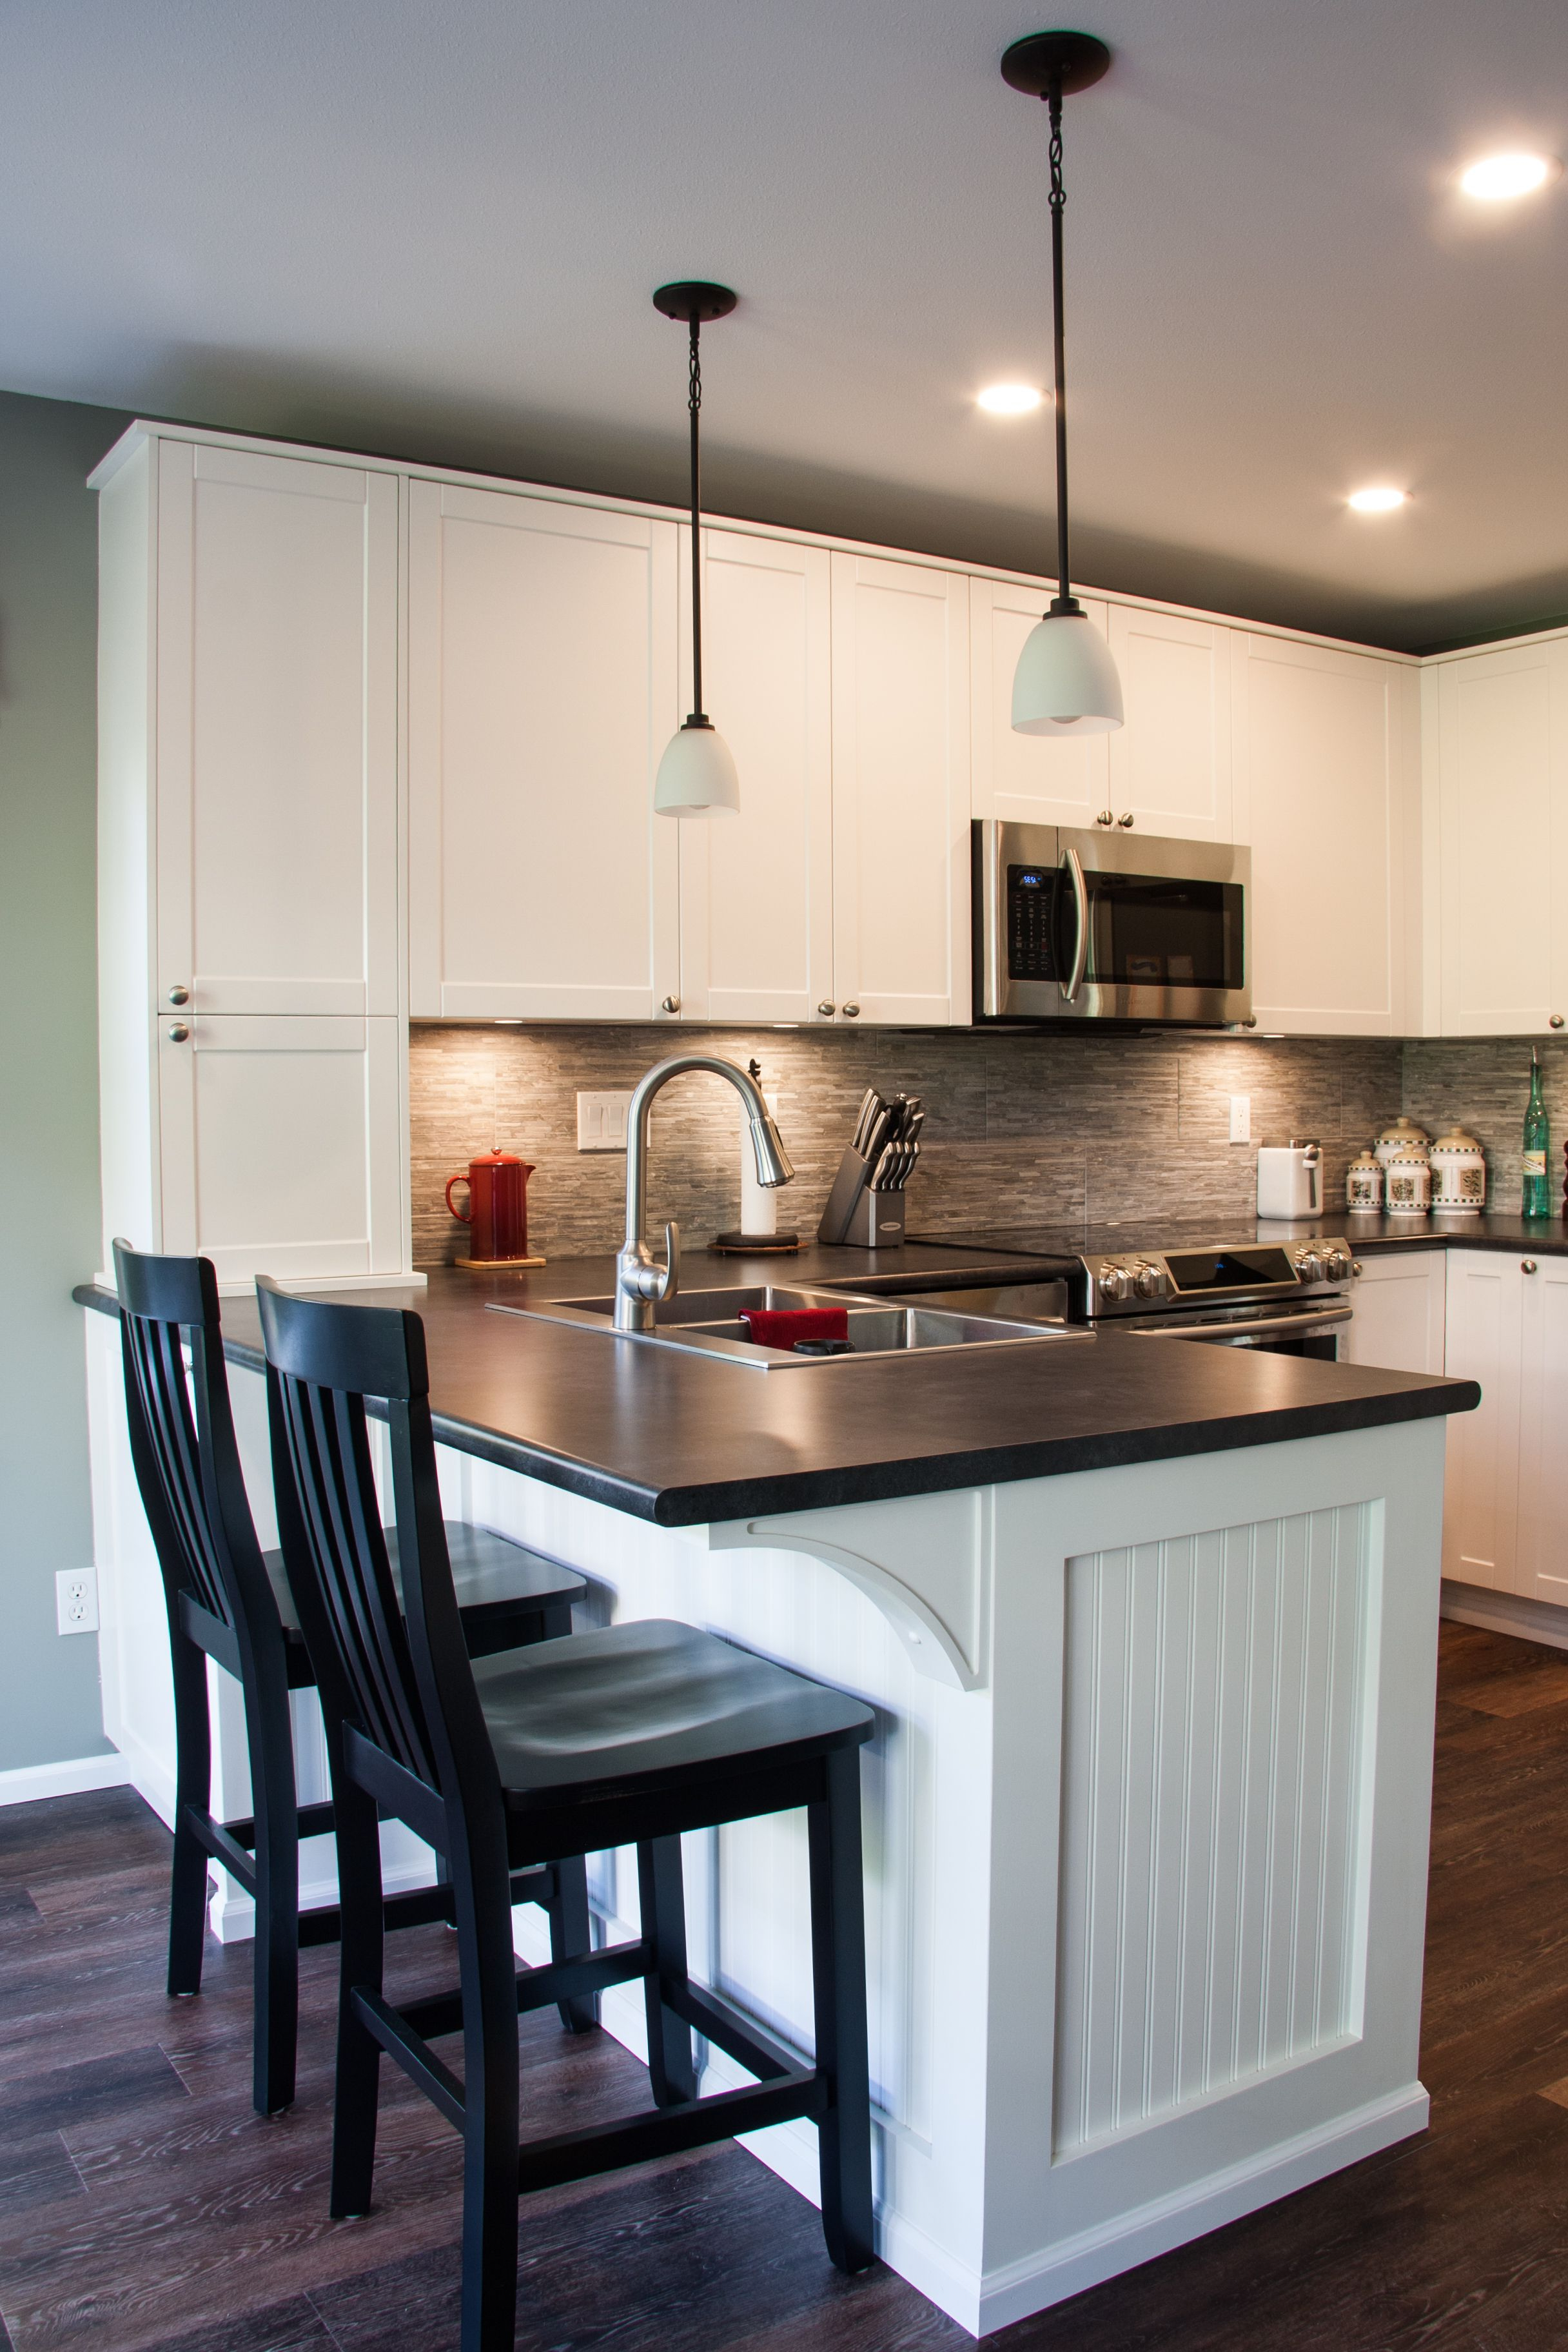 Schutt 4 Light Kitchen Island Pendants With Regard To Most Current New Breakfast Bar And Stools (View 17 of 20)